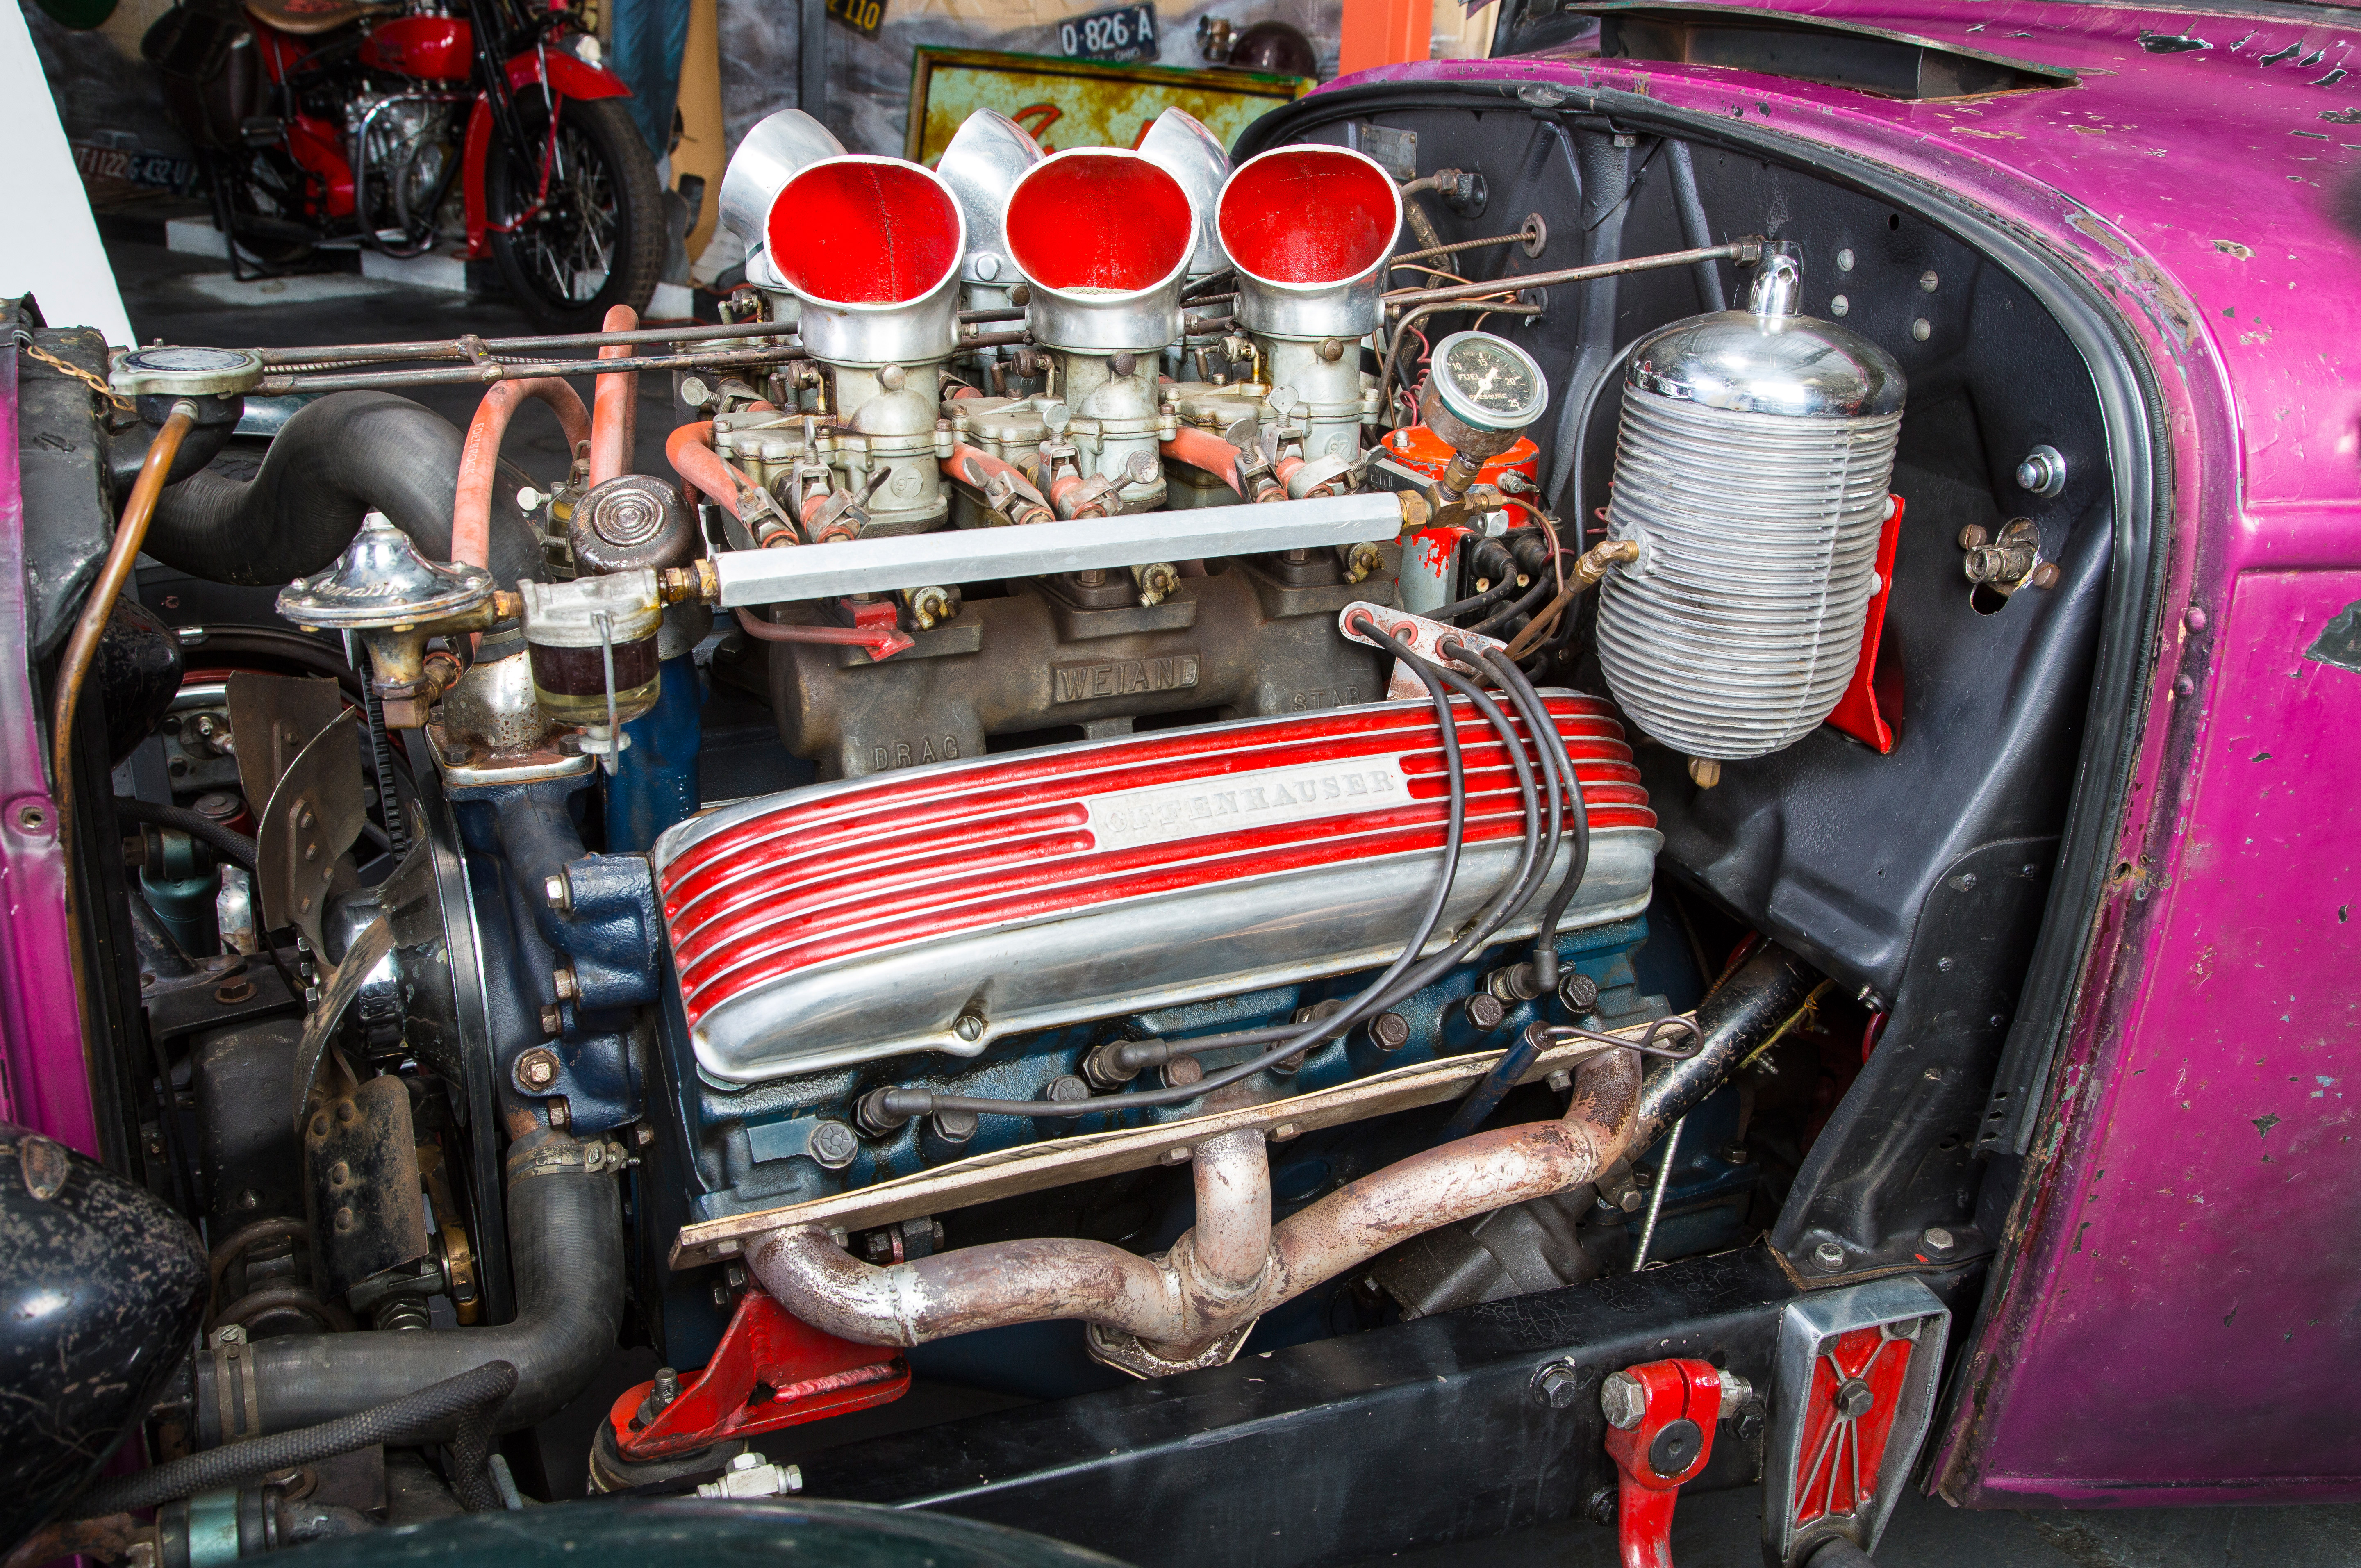 Cadillacs were Bill's engine of choice in the day, and there's a Caddy in it again, a 331-inch '49 mill running a Weiand Drag Star manifold, six Strombergs, and Belond headers.